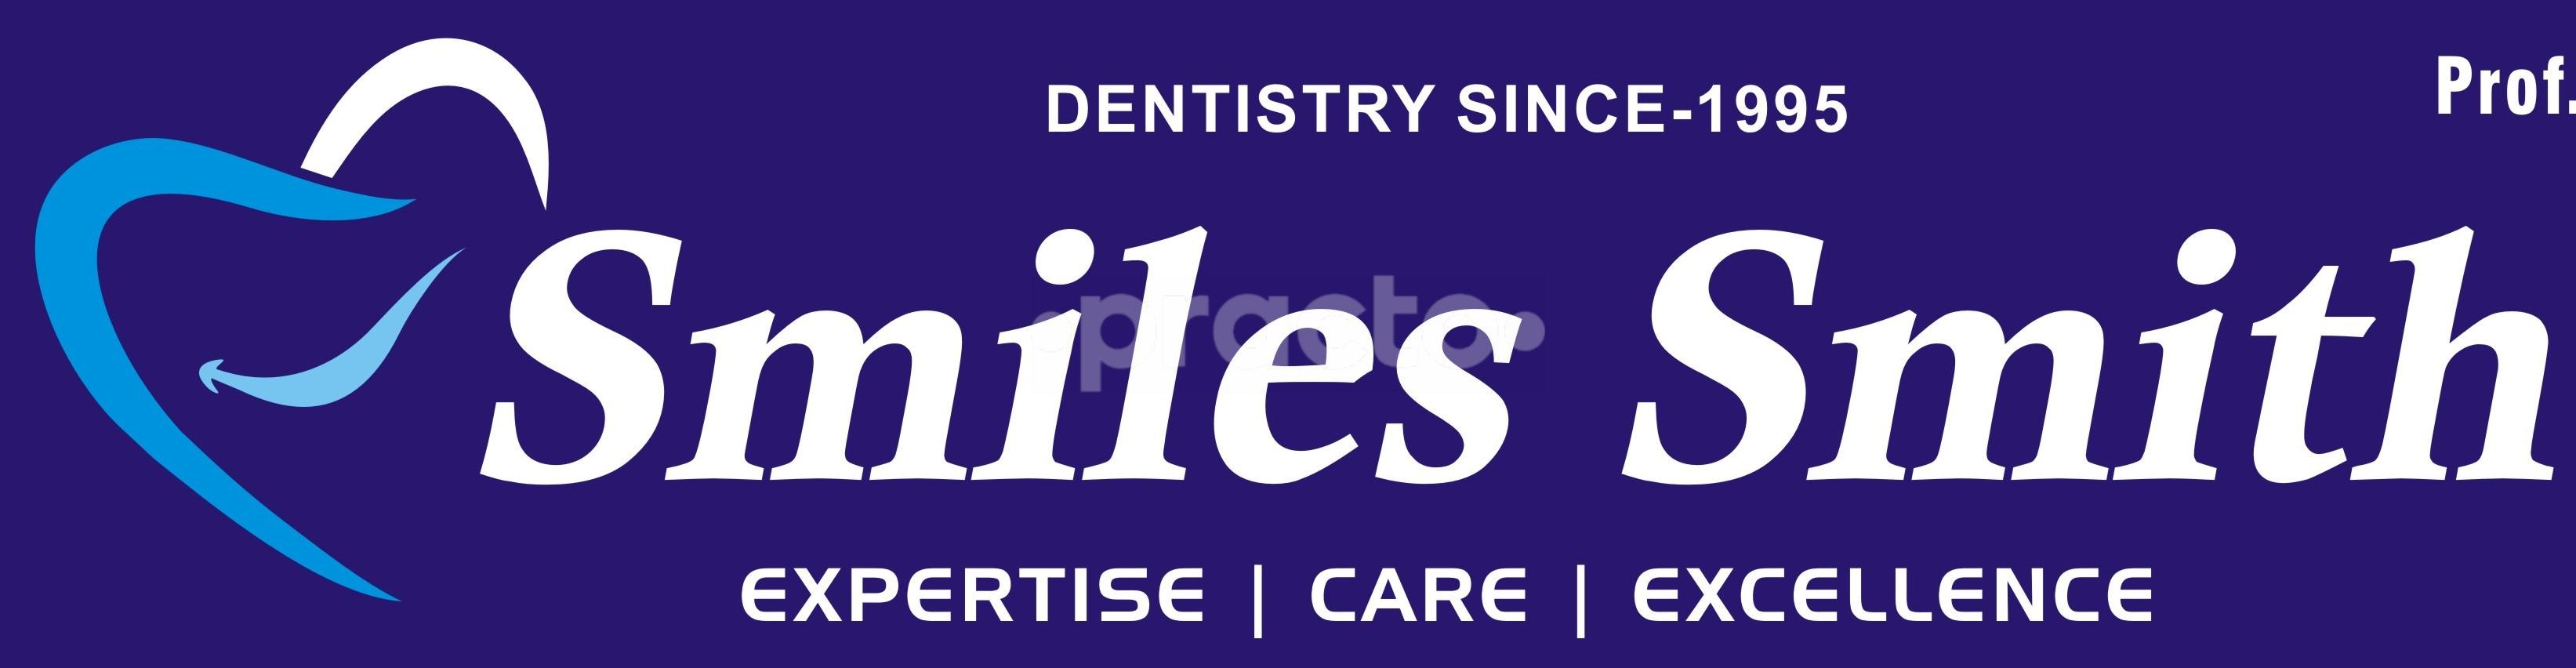 Smiles Smith Advanced Dental Care